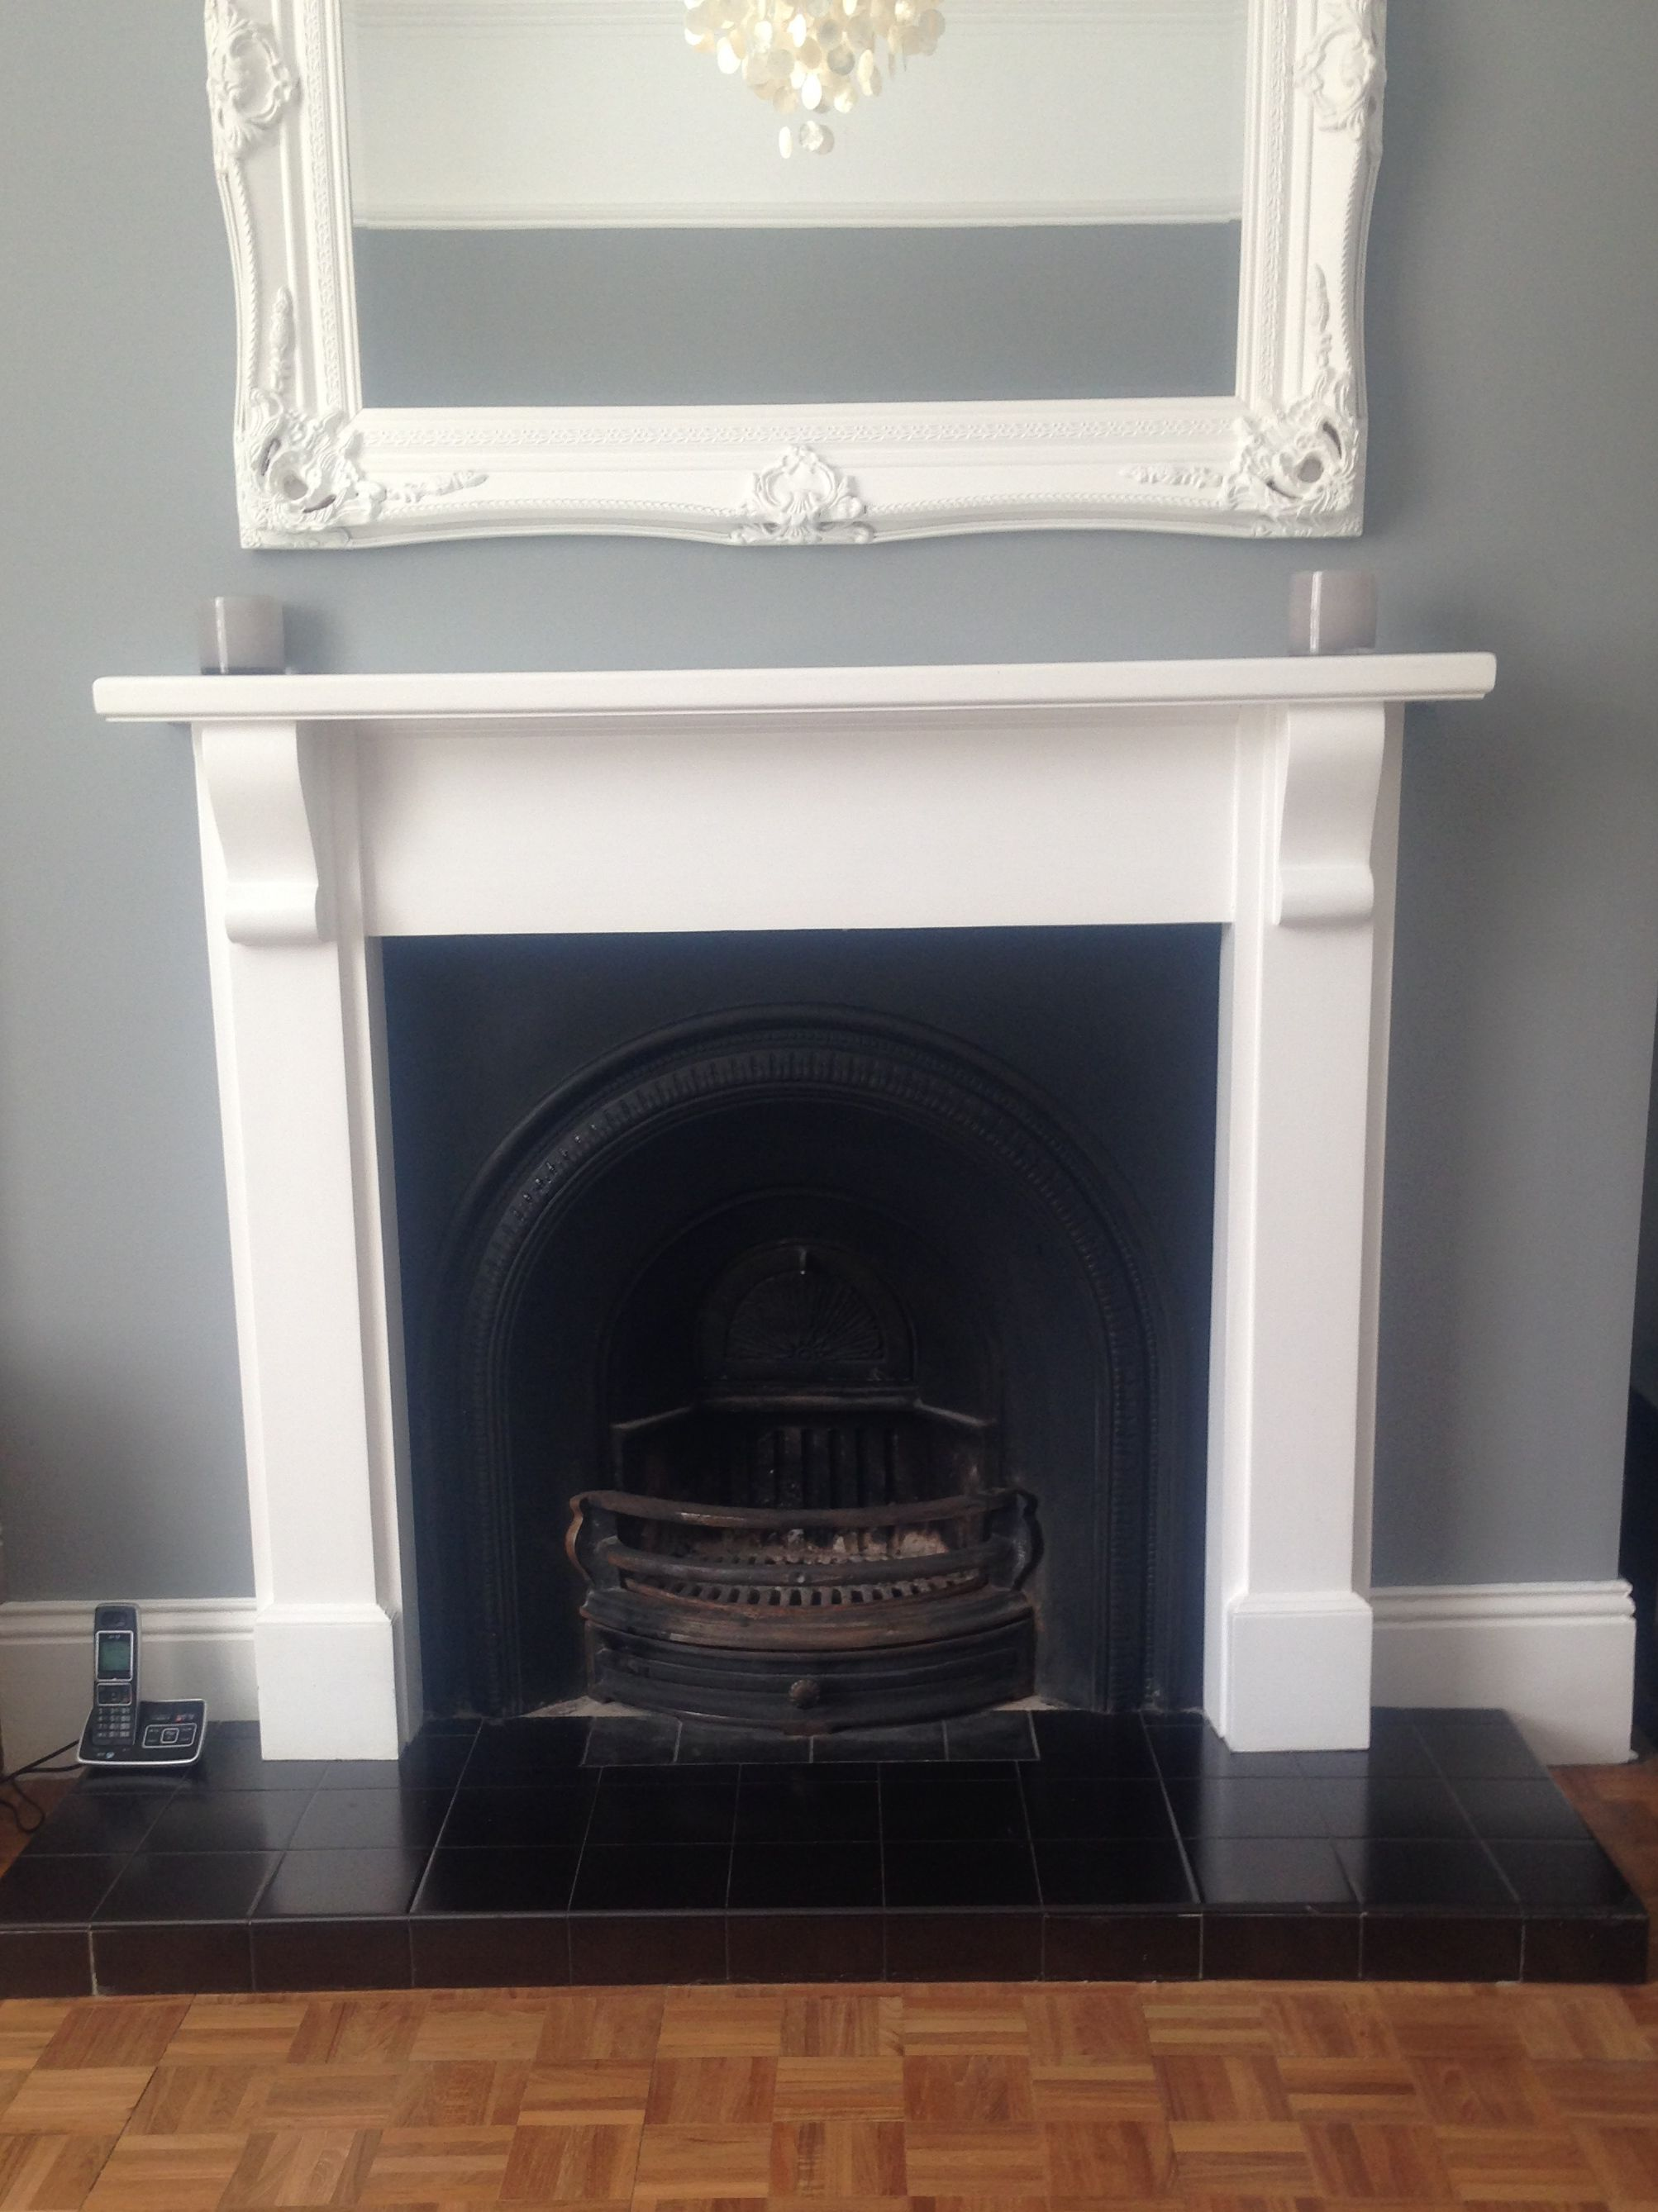 Painted Fireplace With Specialist Matt Black Paint The Surround Featured A Very Shiny Gold Pattern That Really Didn T Fit Grey Room Paint Fireplace Fireplace